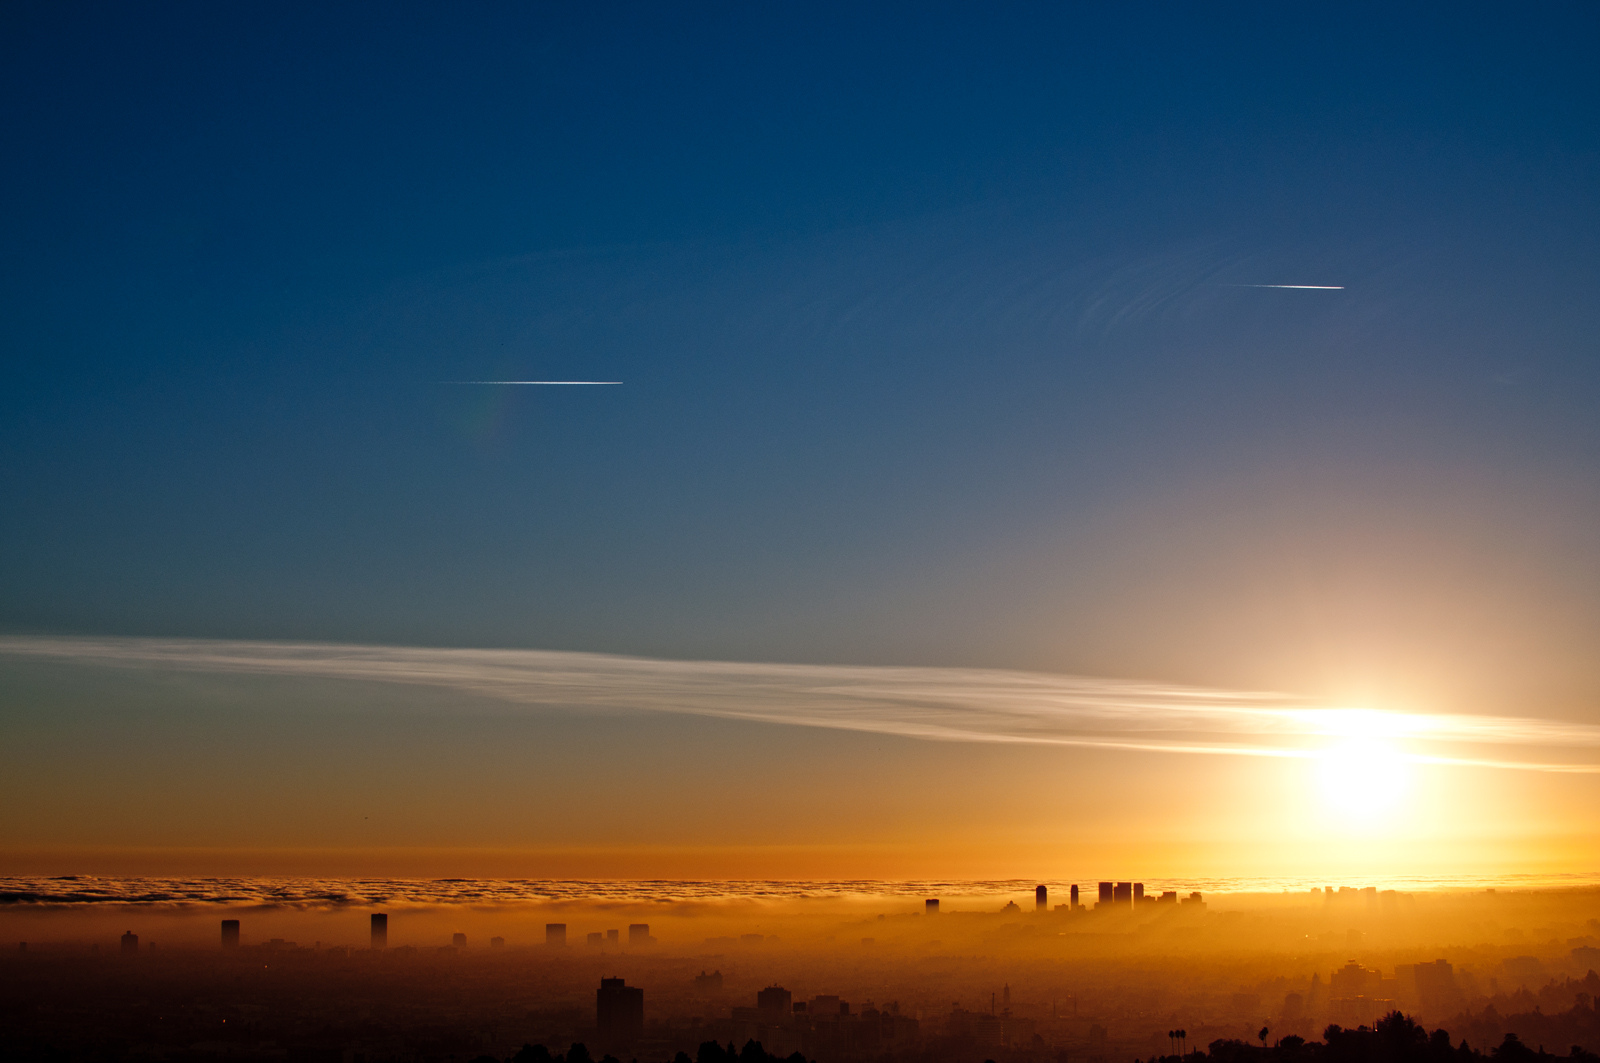 Los Angeles' infamous smog is just one example of climate change's effects on public health. (Flickr)